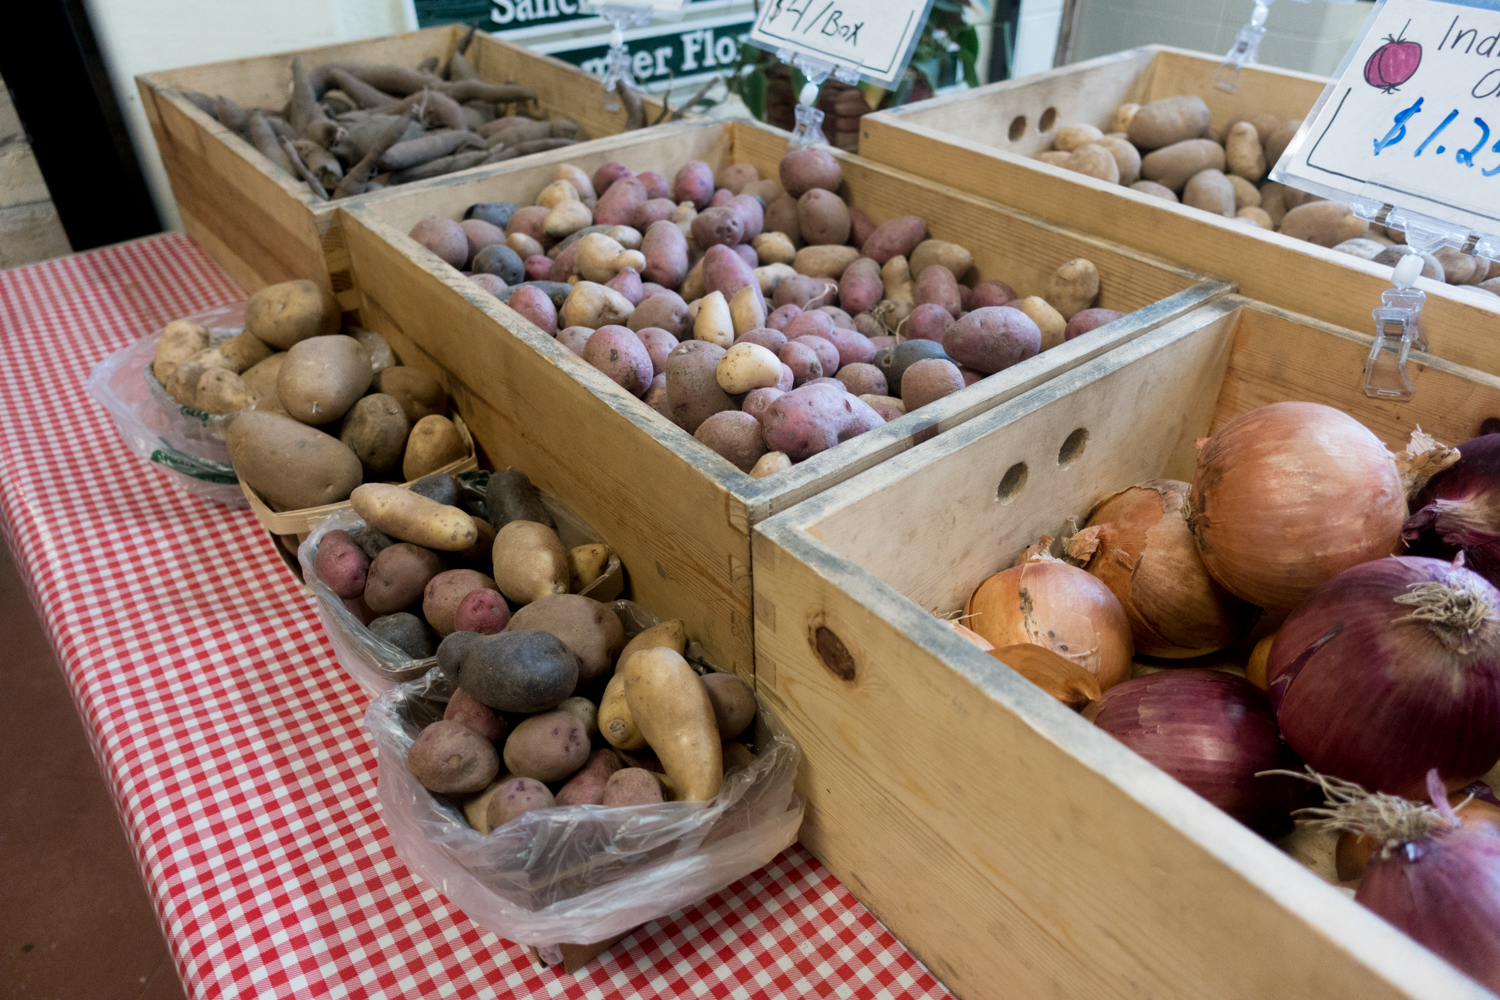 Shop for local produce and products at the indoor farmers market locatedinside theVillage at Grand Traverse Commons. #winter #farmersmarket